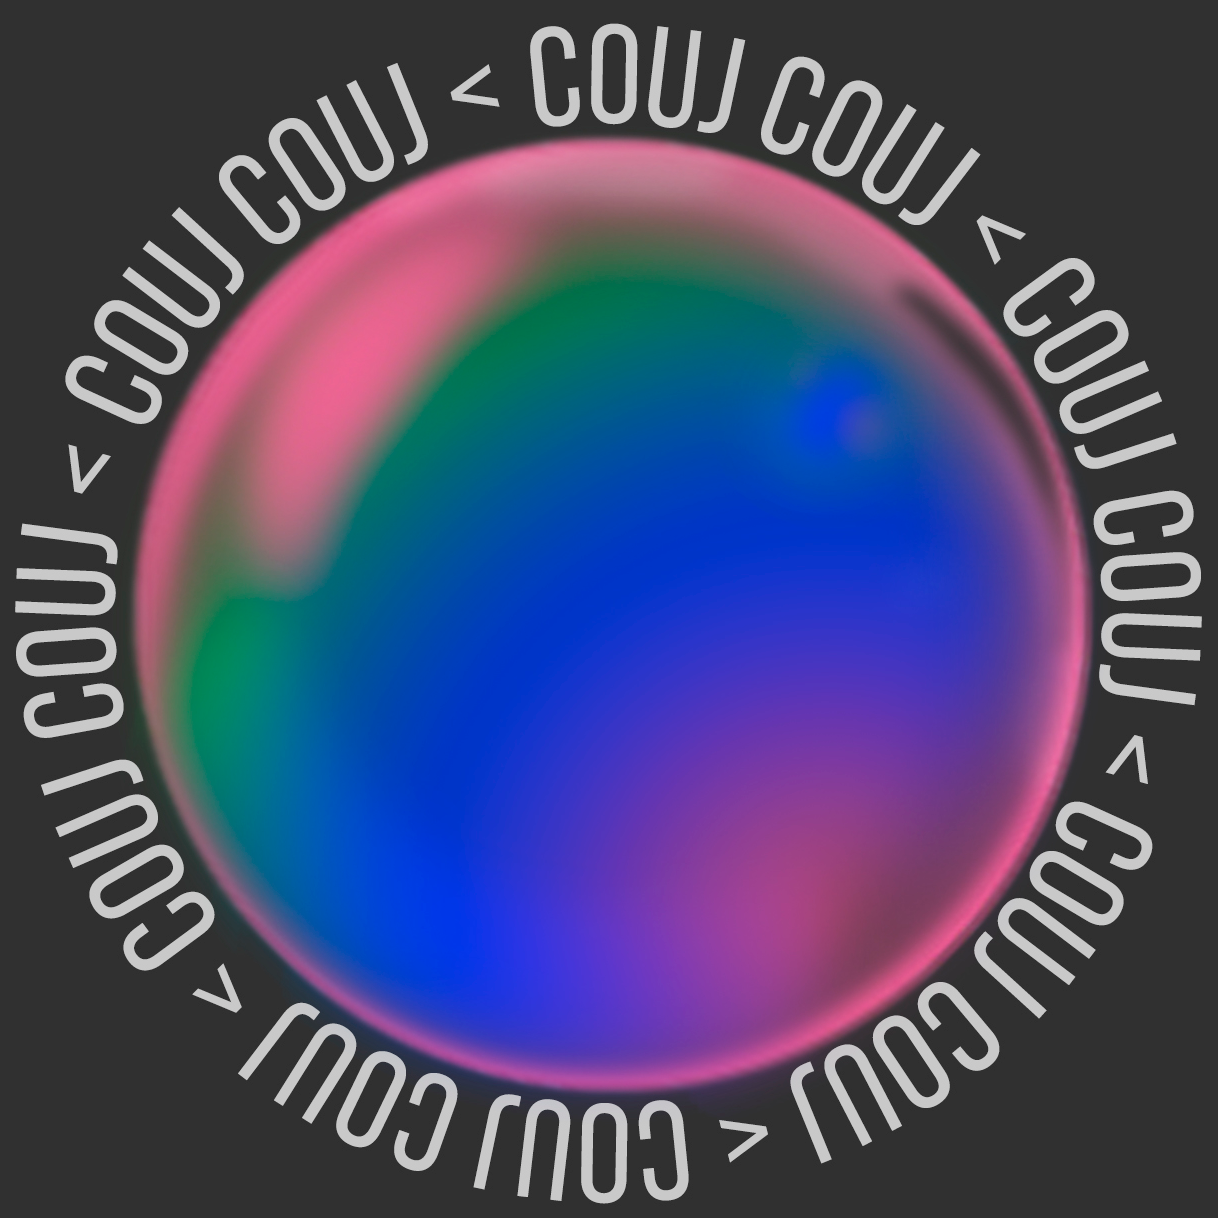 Couj Couj from Outer Space